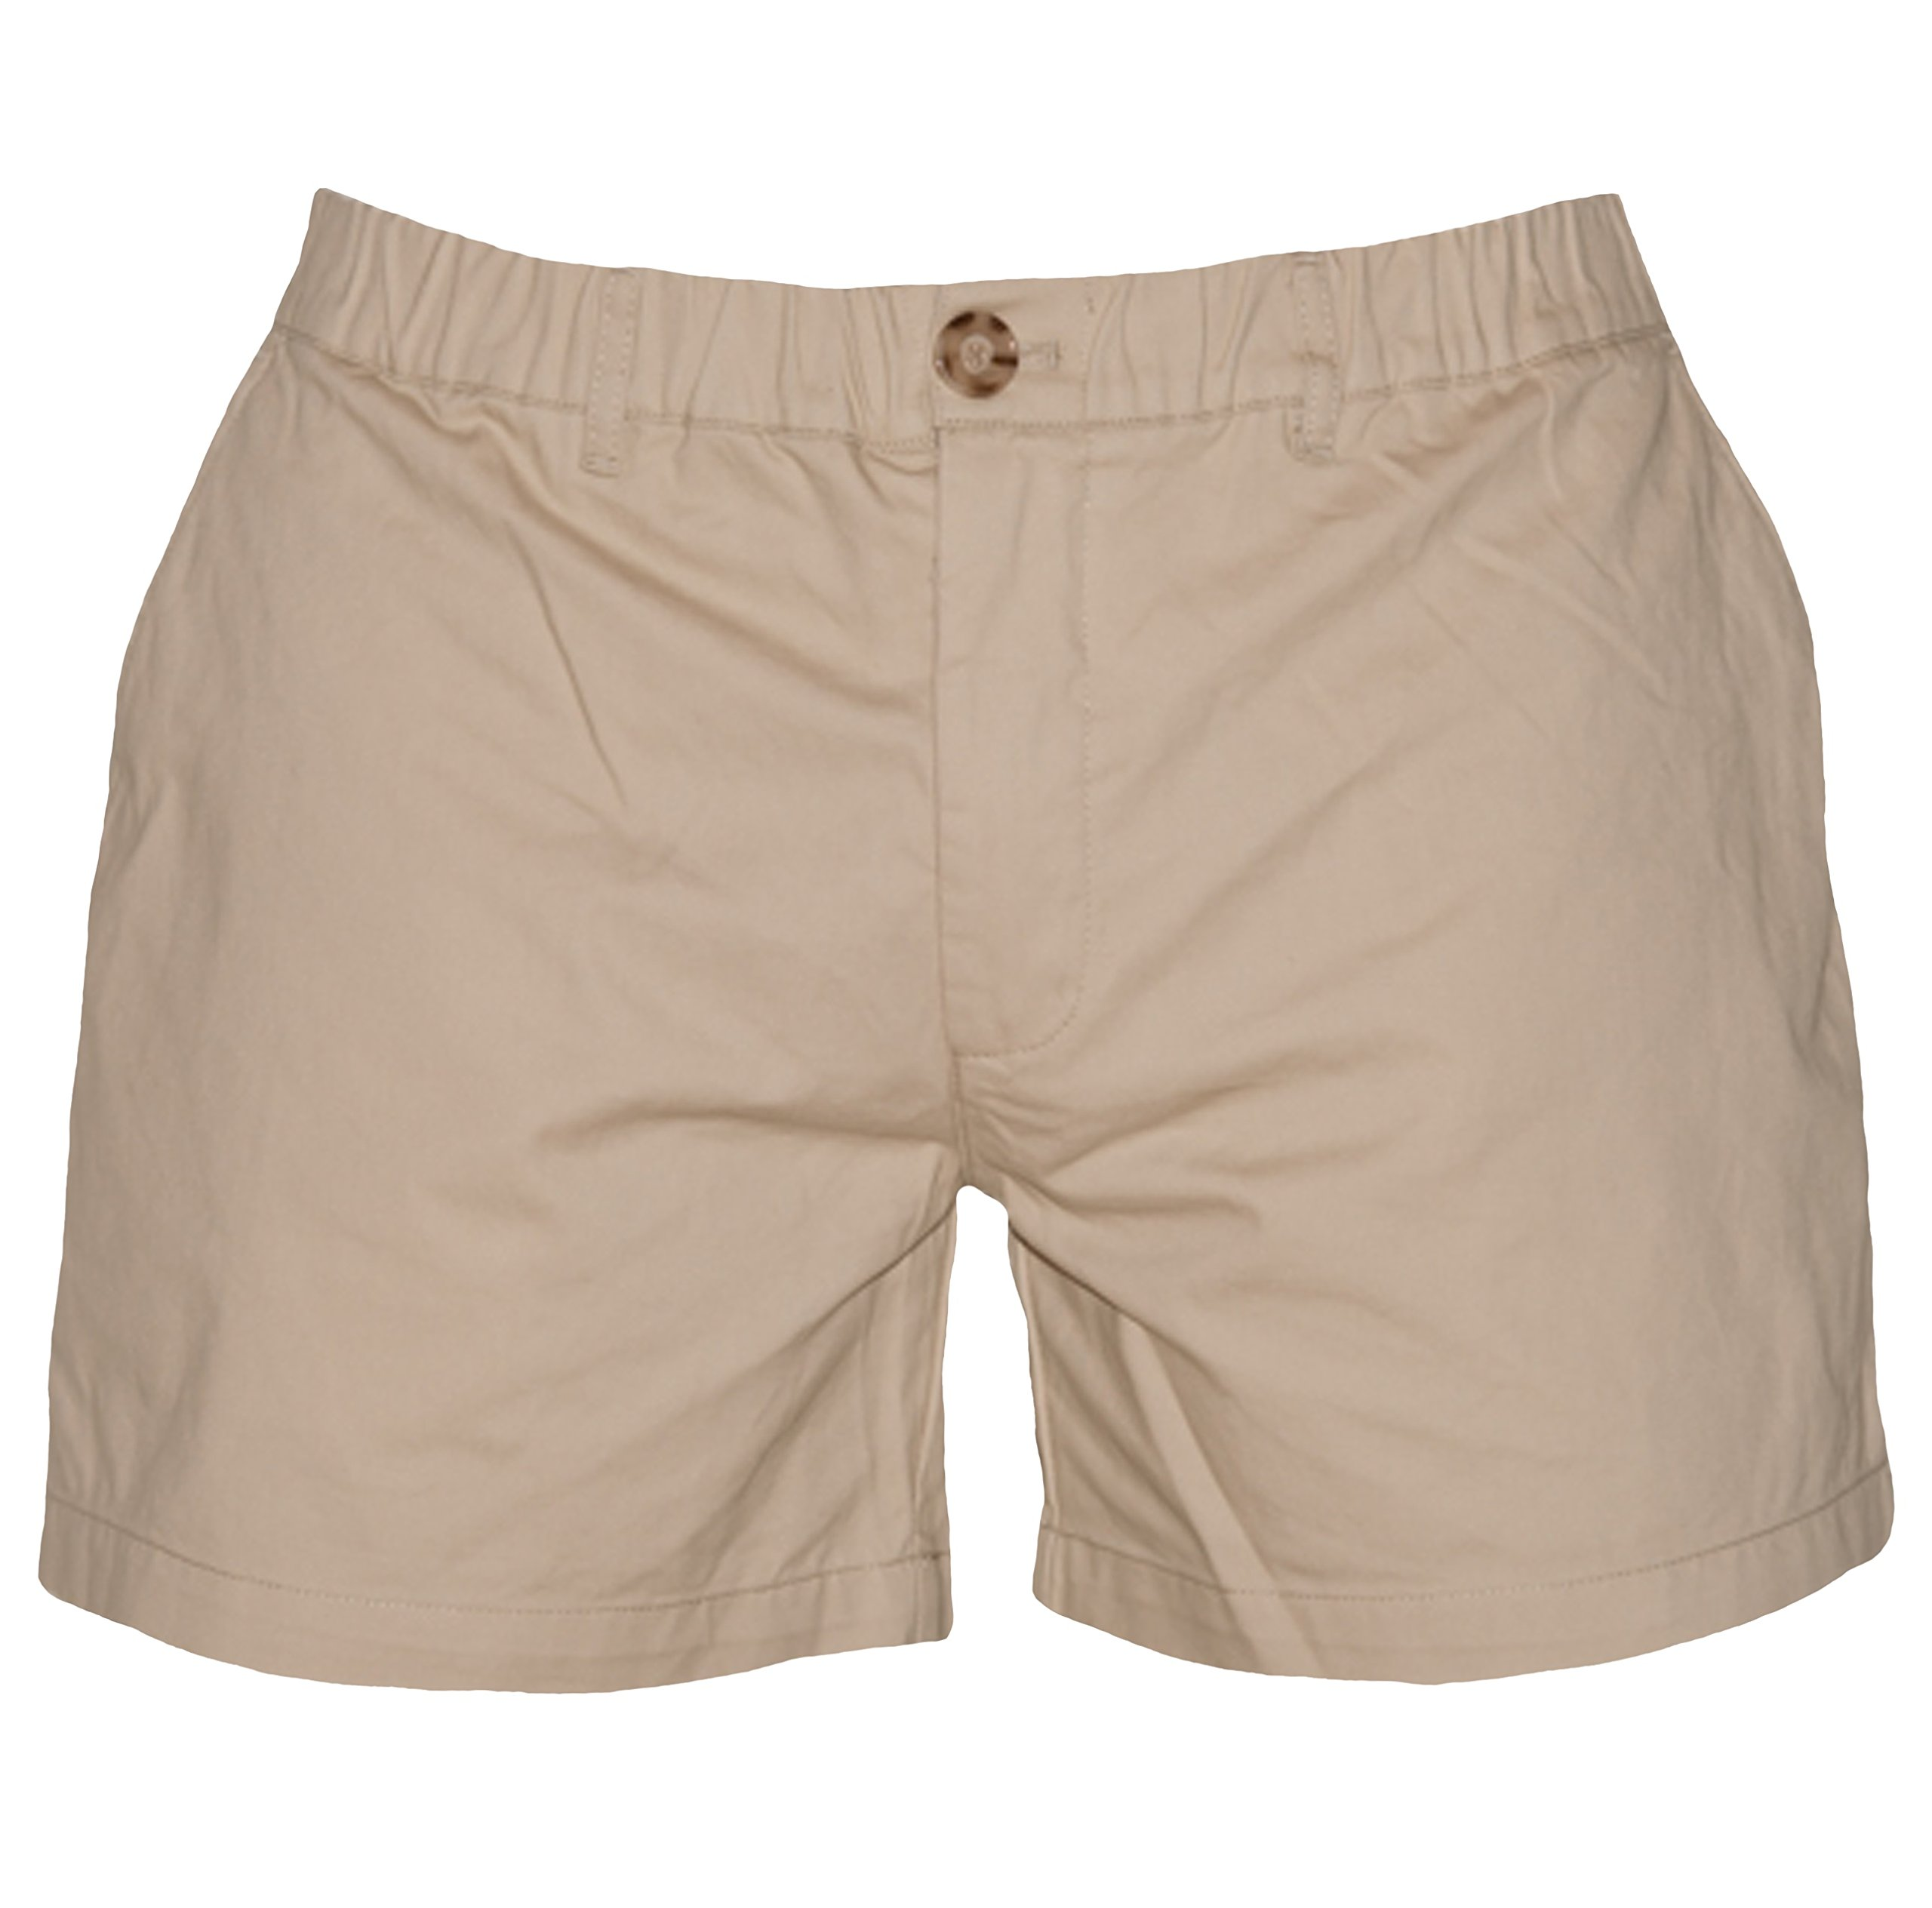 Meripex Apparel Men's 5.5'' Inseam Elastic-Waist Shorts (Medium, Original Khaki)